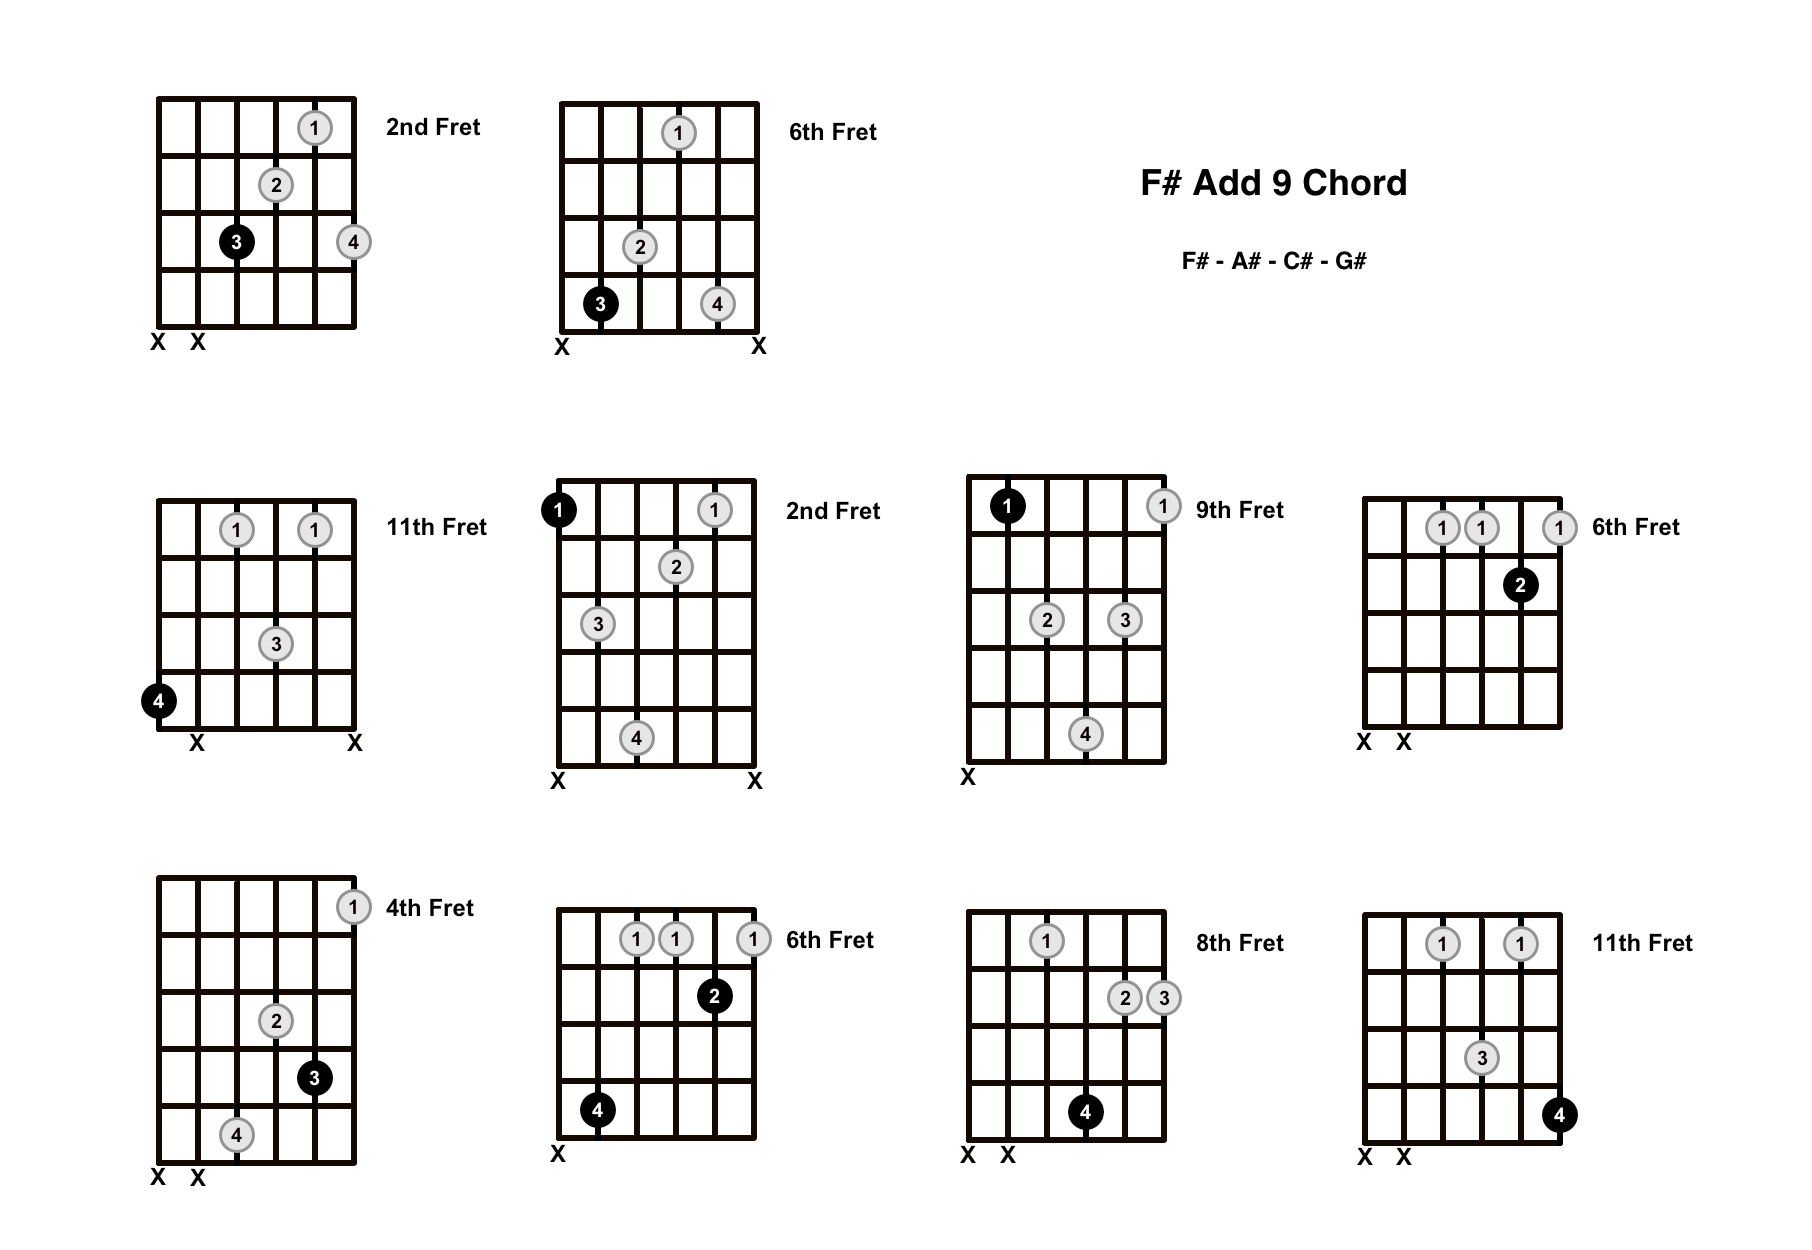 F# Add 9 Chord On The Guitar (F Sharp Add 9/F Sharp Add 2) – Diagrams, Finger Positions and Theory